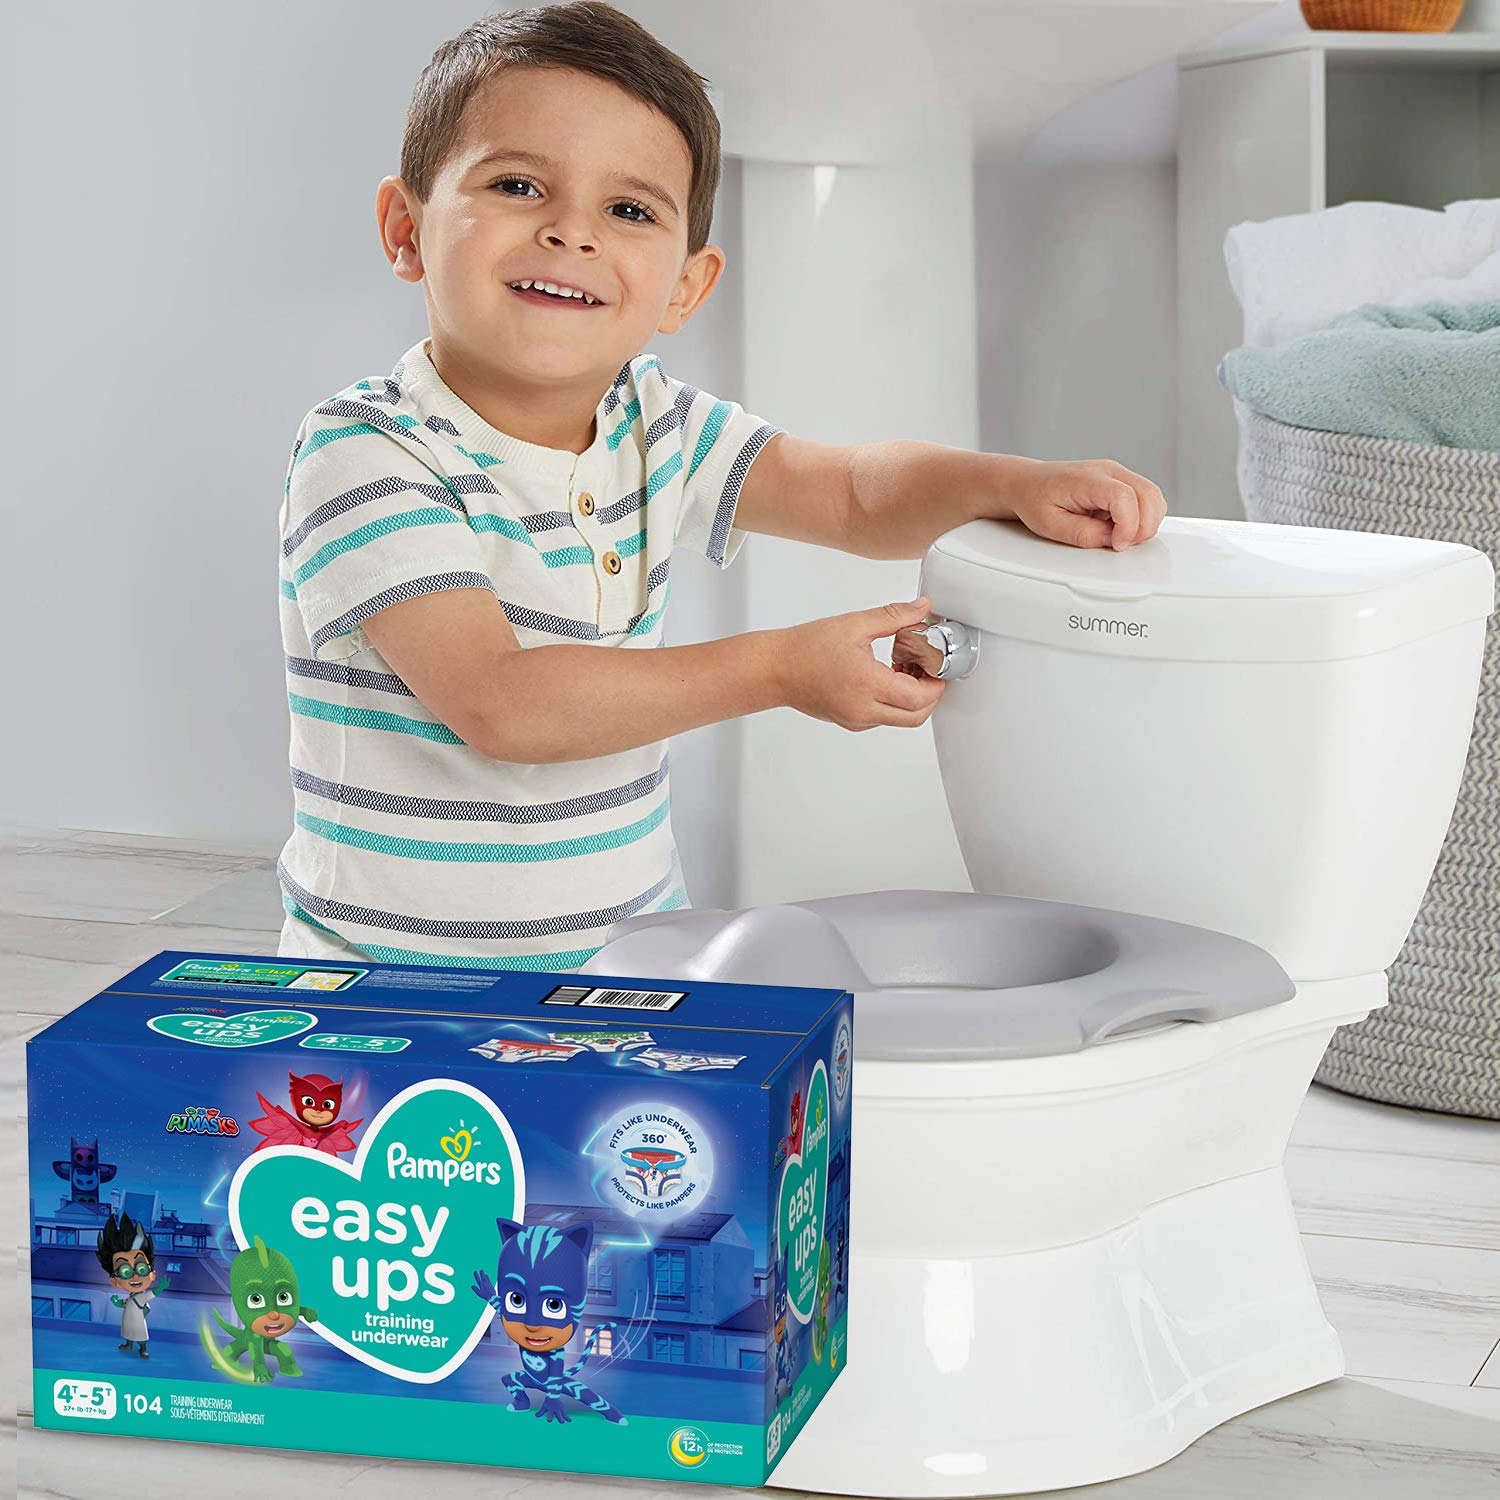 Potty Training Seat Starter Kit—My Size Potty Train & Transition and Pampers Easy Ups 4T-5T Potty Training Underwear for Boys and Girls, Size 6, 104 Count (Packaging May Vary)